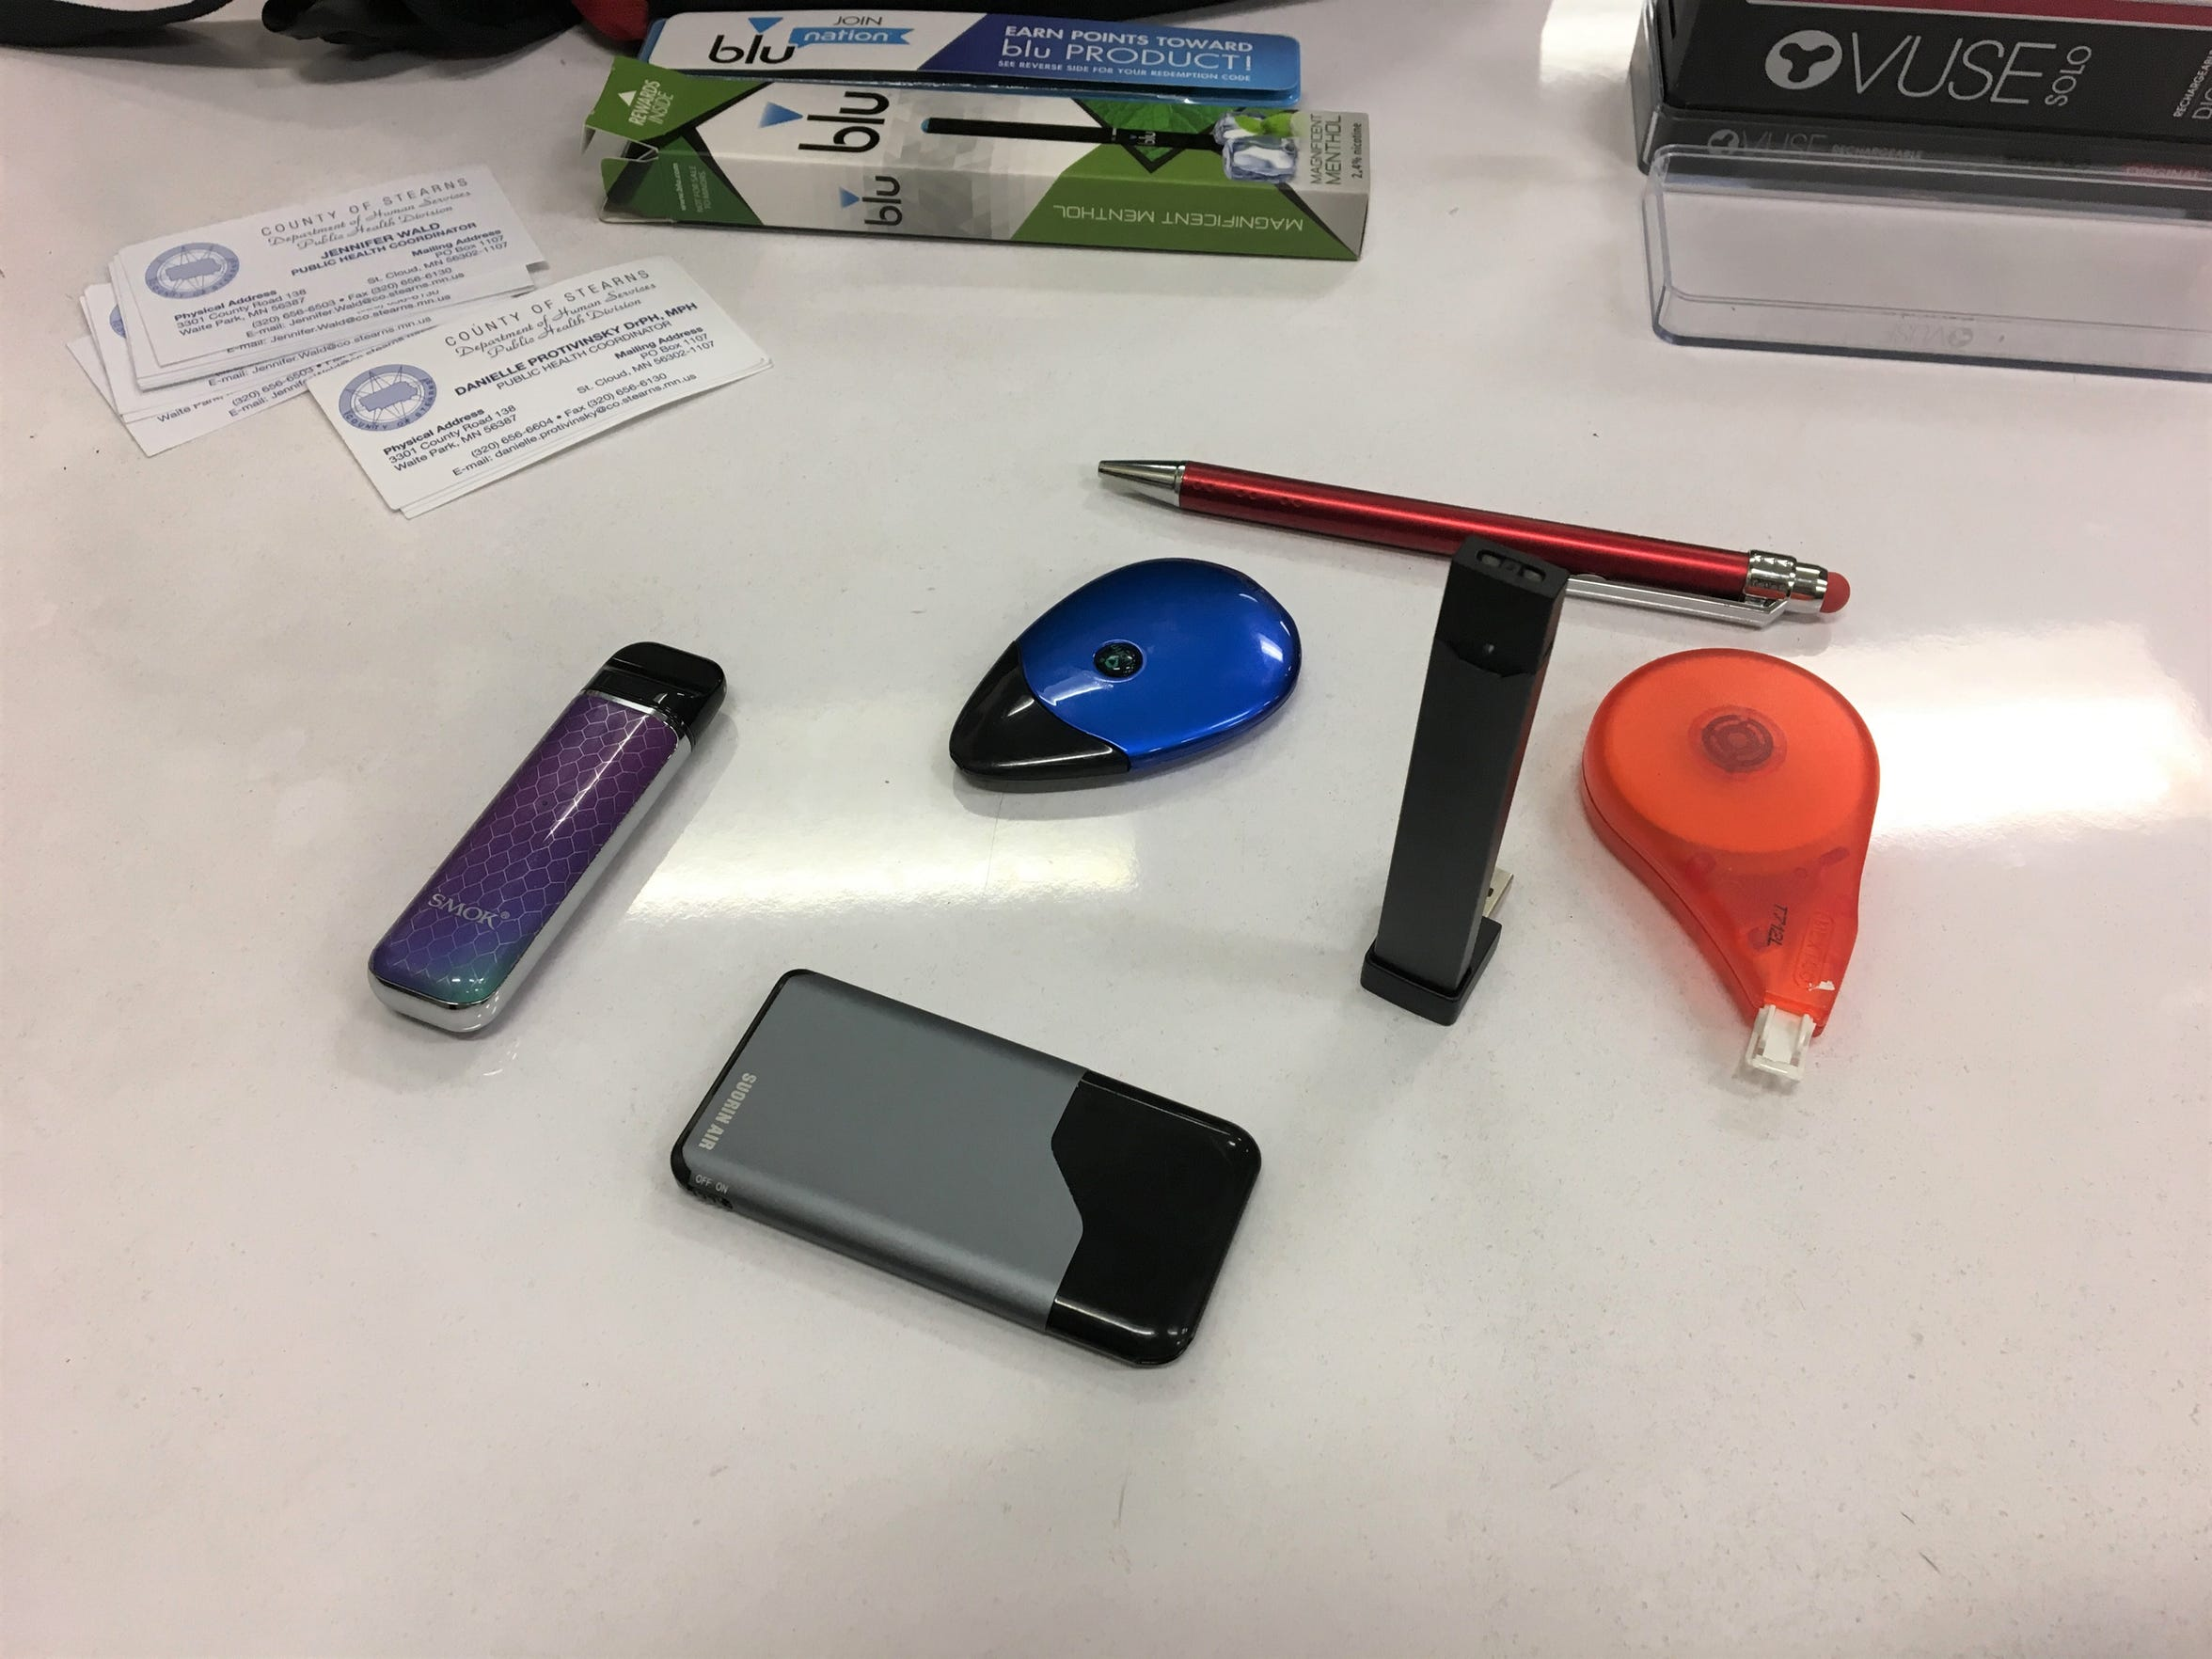 Many e-cigarettes (vaping devices) are manufactured for disguise — whether it be as a pen, smartphone, whiteout or a WiFi port. This poses a unique challenge to teachers and staff to recognize them.